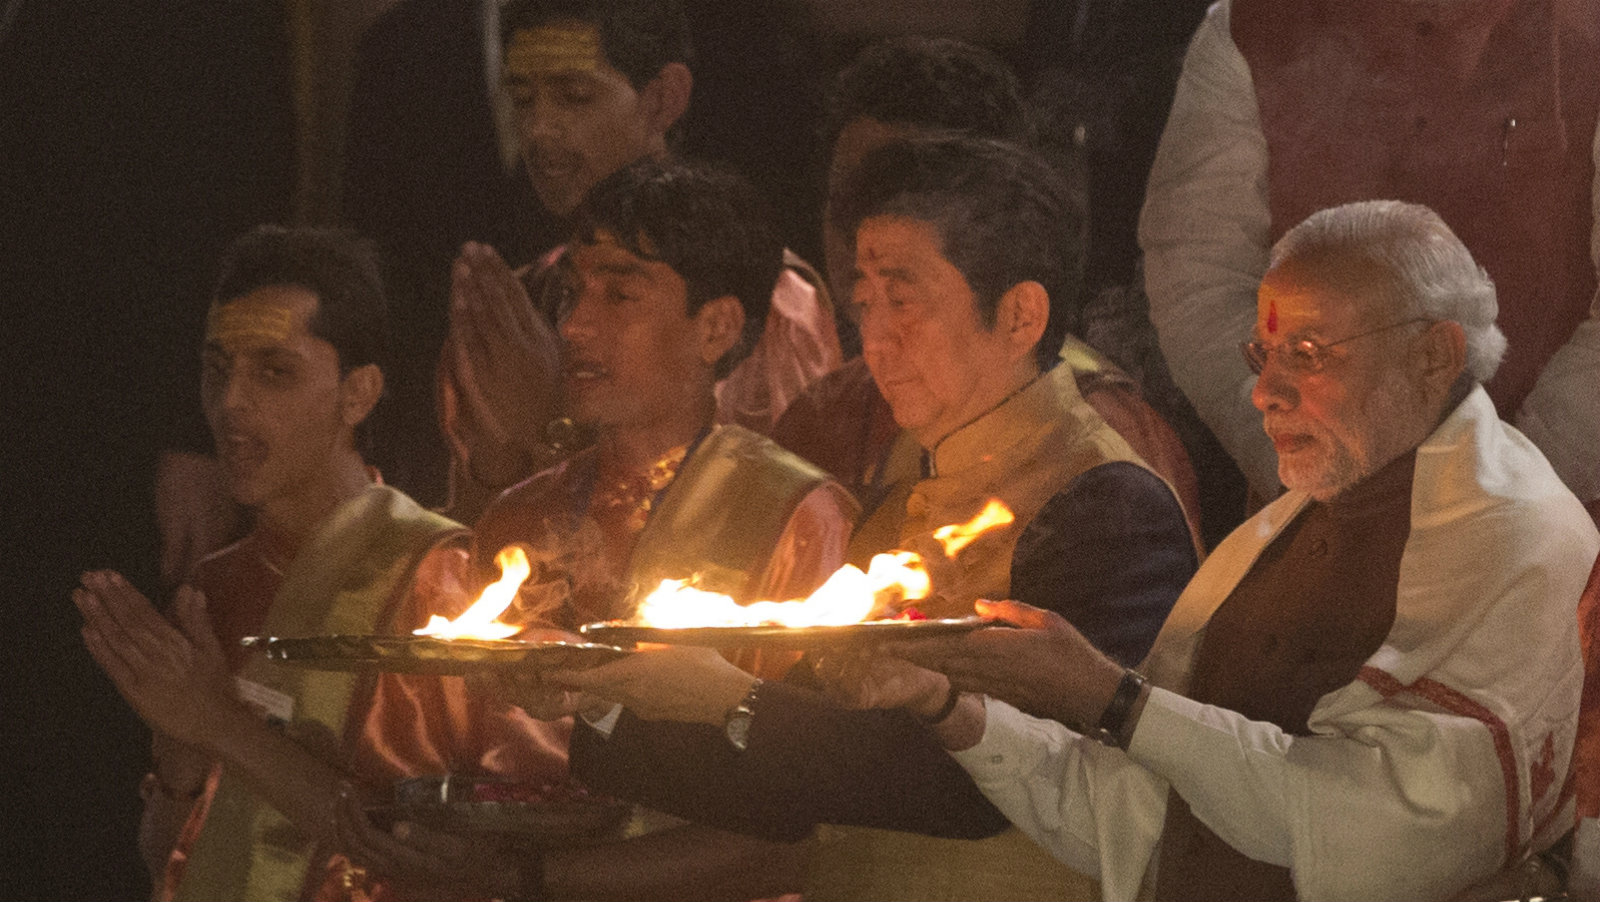 Japanese Prime Minister Shinzo Abe, second right, and Indian Prime Minister Narendra Modi, right, attend the Ganga aarti, a religious ceremony or a prayer for the river Ganges, in Varanasi, India, Saturday, Dec. 12, 2015. India and Japan have signed agreements on military purchases for India's armed forces, high-speed trains and upgrading India's infrastructure.